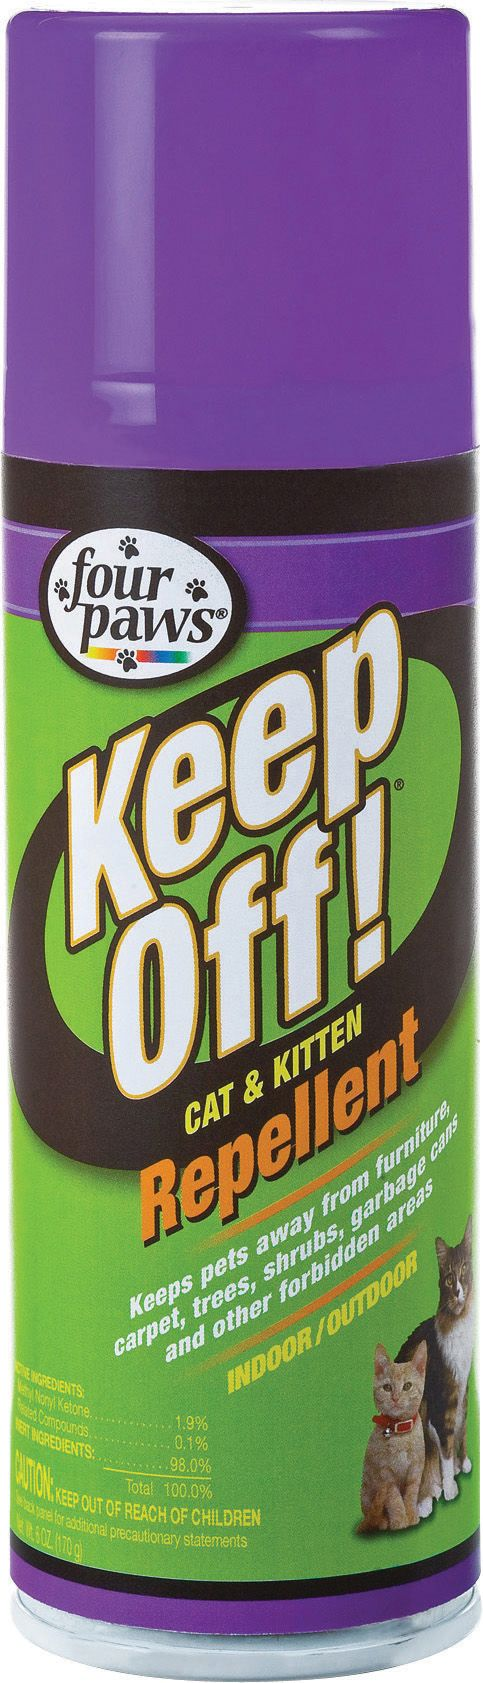 Cats Keep Off Indoor/outdoor Cat Repellent By Four Paws 6